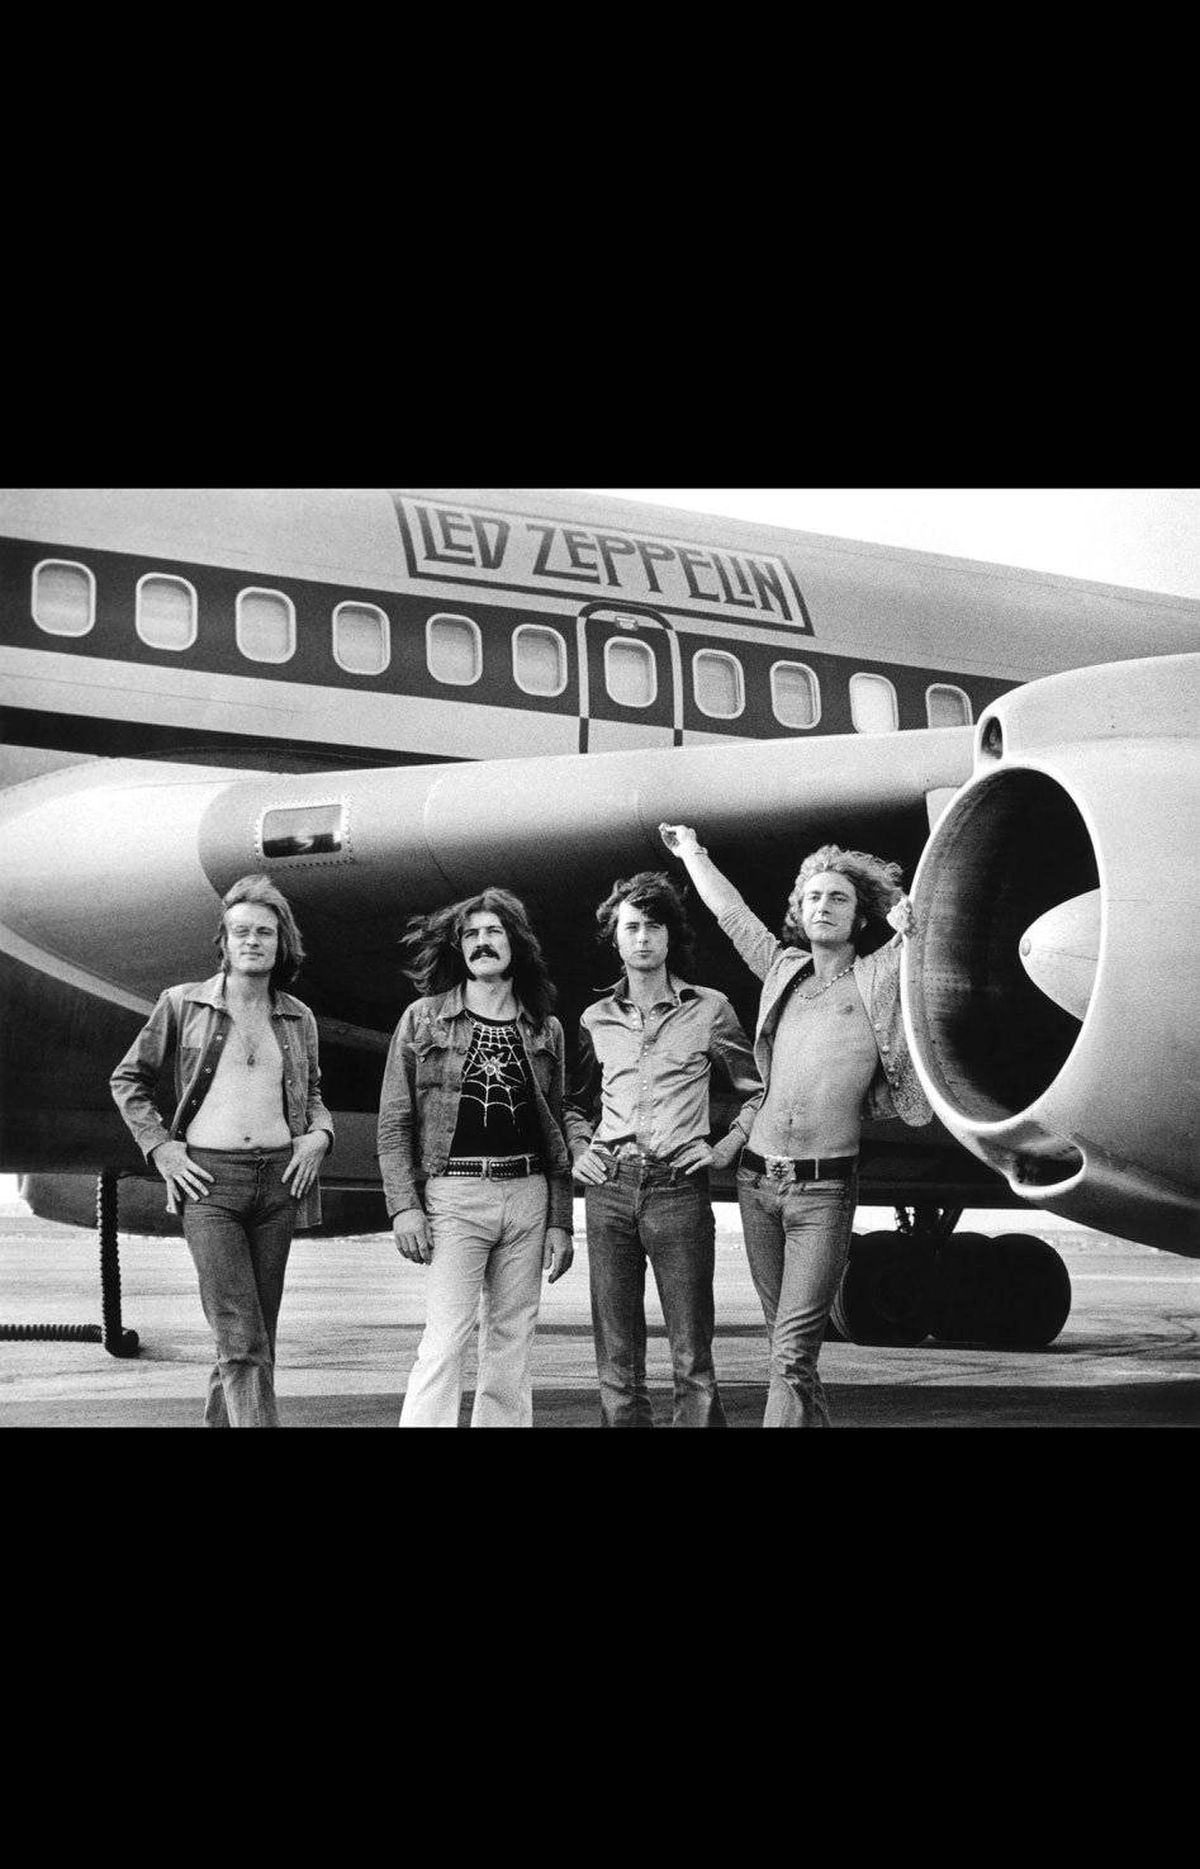 Led Zeppelin – In Front of Plane (1973) It was a 727, a really big plane. When we got to the airport, Robert [Plant] asked if I could take a picture of them in front of their plane. I only took about a half-dozen shots. I mean, it didn't seem like such a big deal, it was just a band with their plane – even though it was a really nice plane. But it's become one of the most iconic images, most well-known images of Led Zeppelin. There's just something about the excess of the 1970s that you really see: a bunch of bare-chested guys proud of their giant airplane.